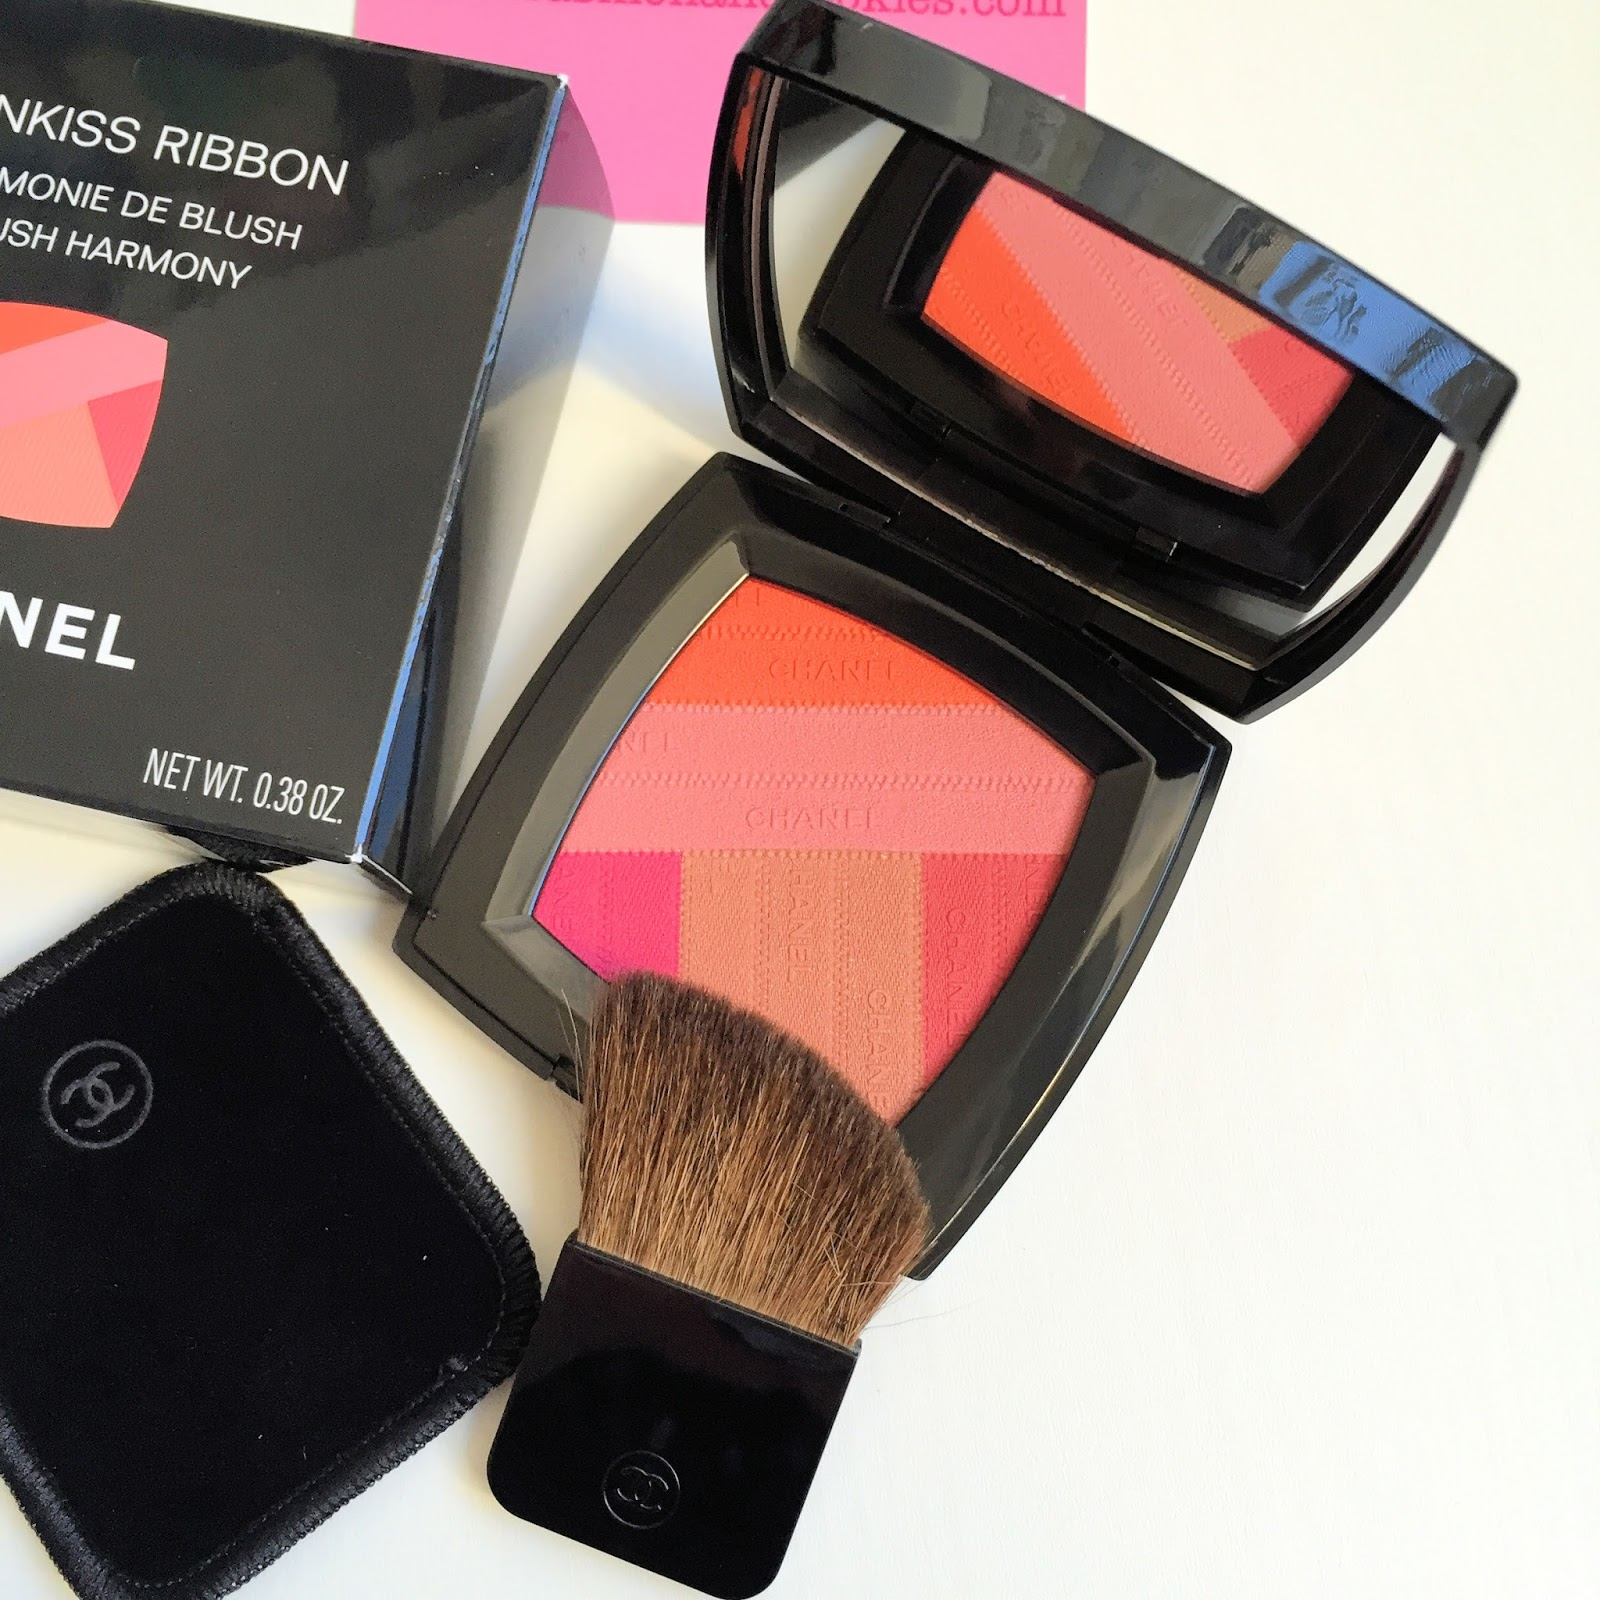 Chanel Sunkiss Harmonie de Blush from Chanel LA Sunrise collection on Fashion and Cookies fashion and beauty blog, beauty blogger